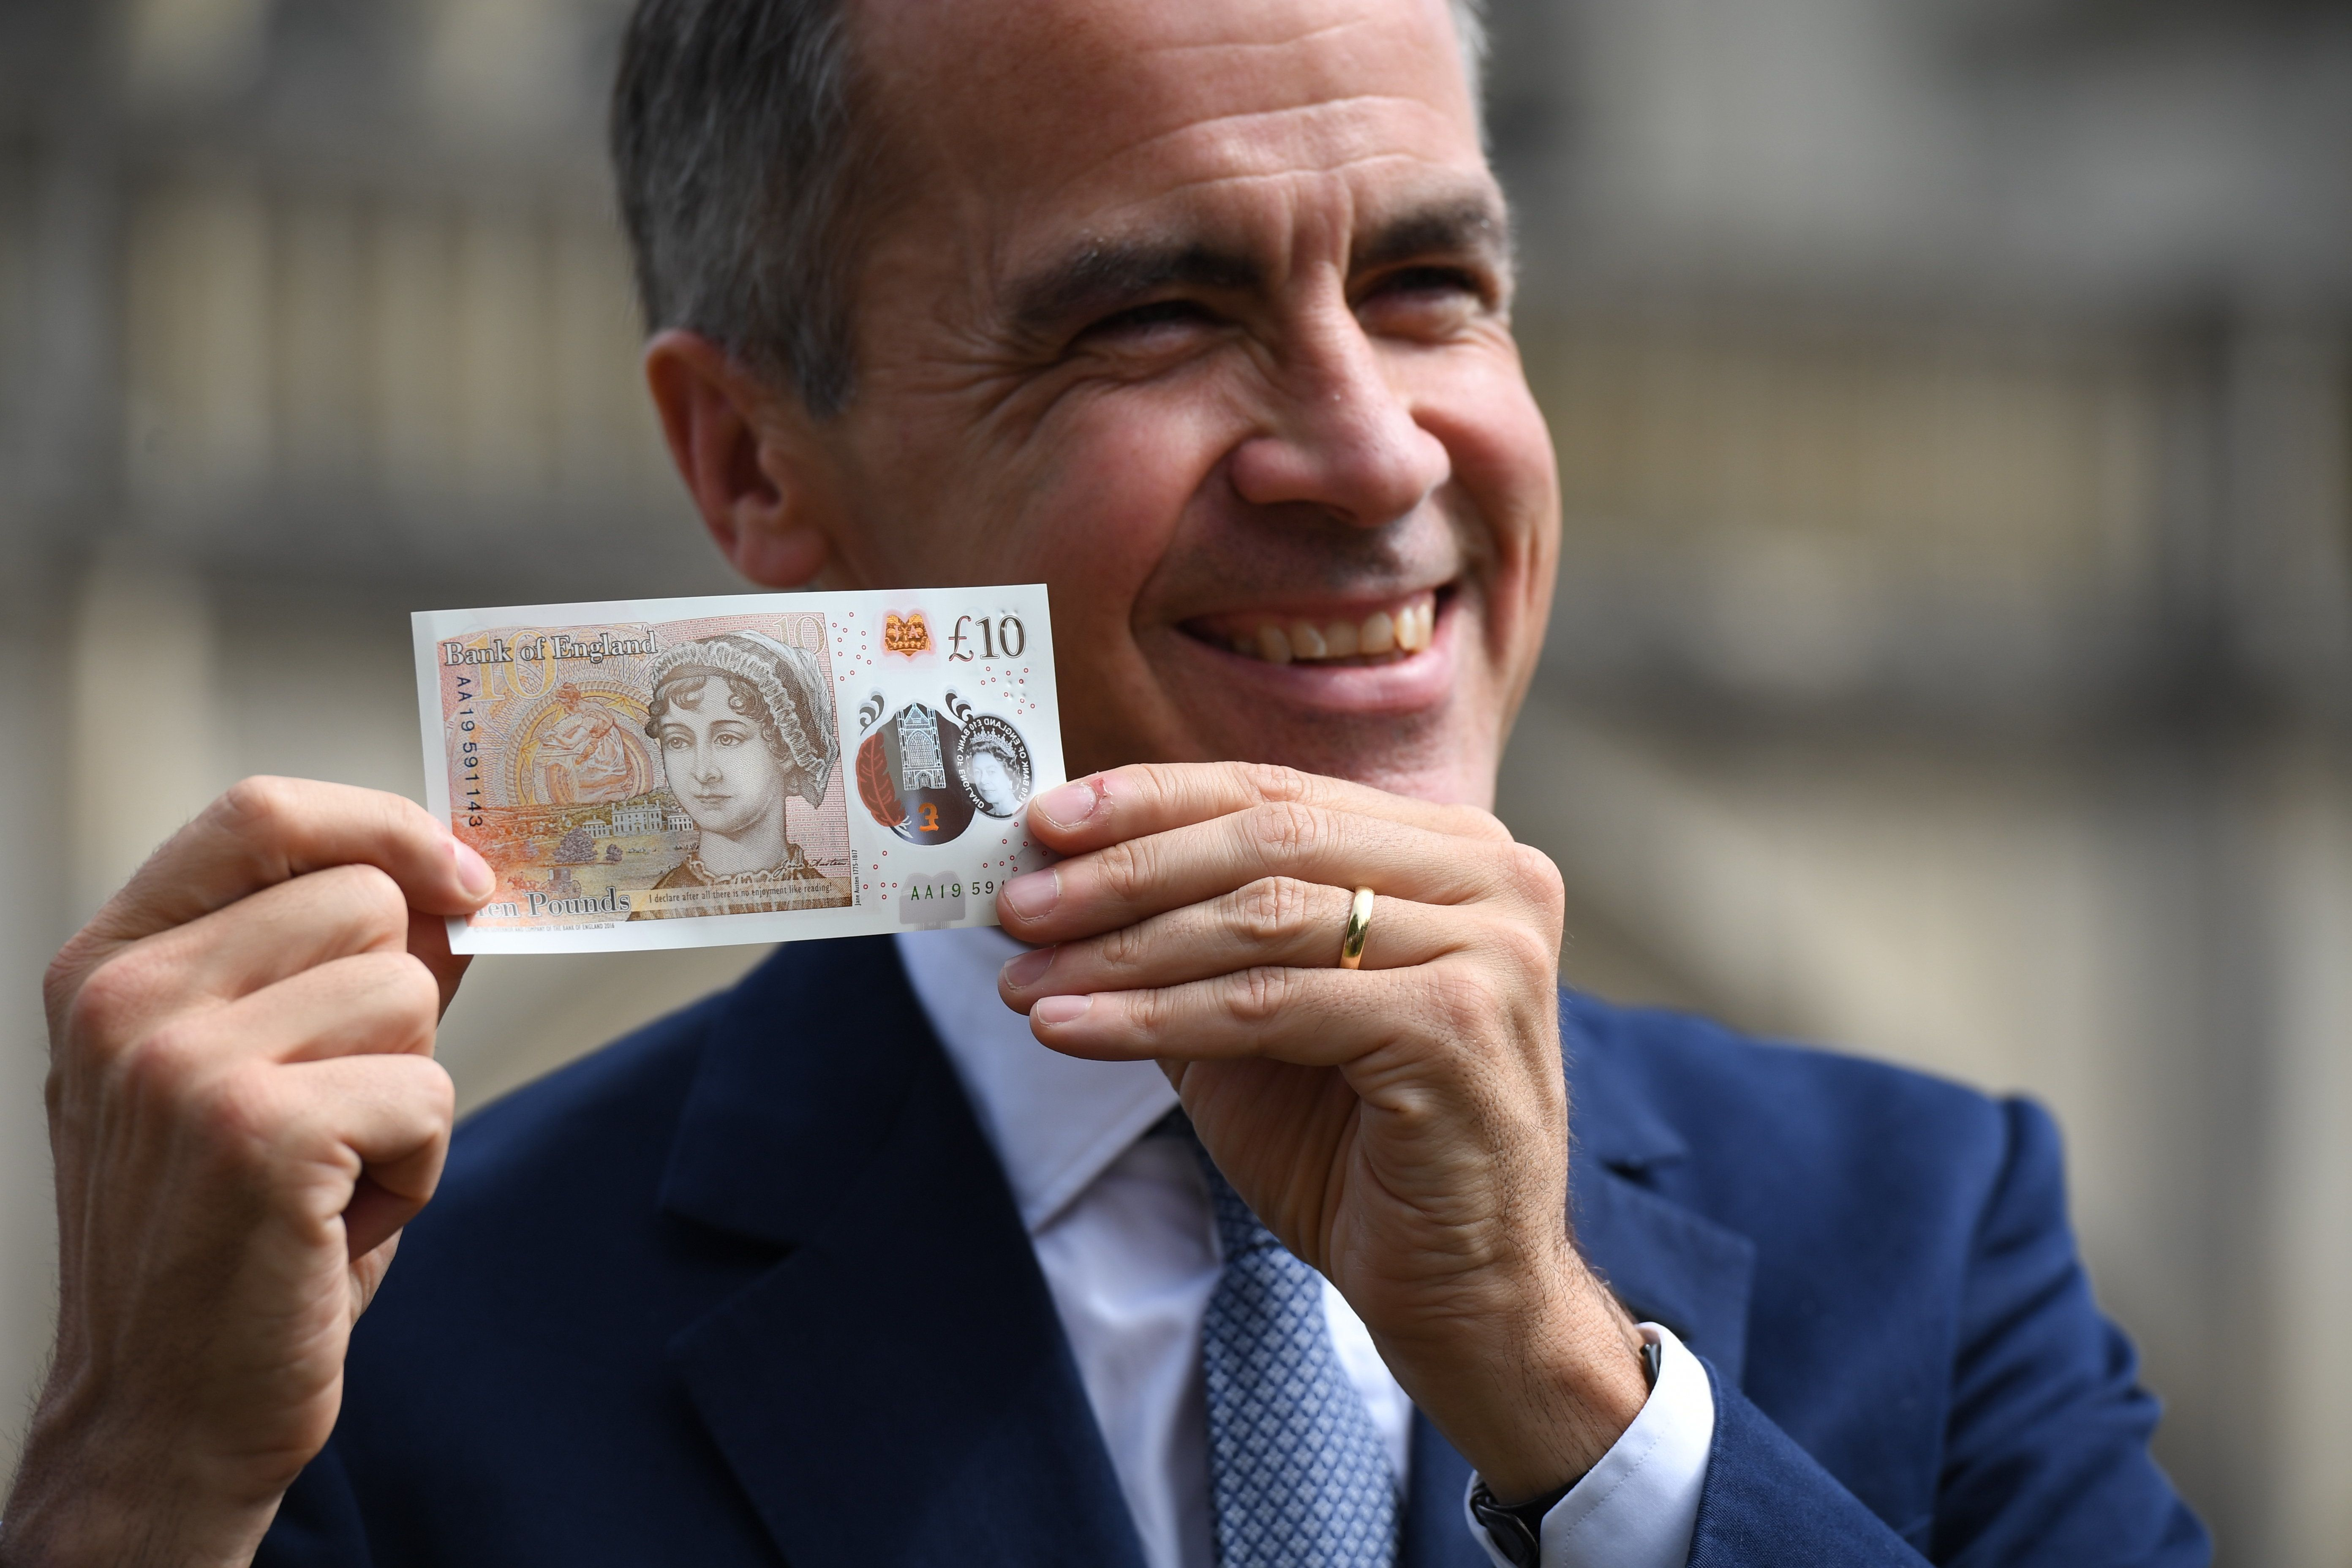 <strong>The Governor of the Bank of England, Mark Carney, during the unveiling at Winchester Cathedral, of the new £10 note featuring Jane Austen, which marks the 200th anniversary of Austen's death.</strong>